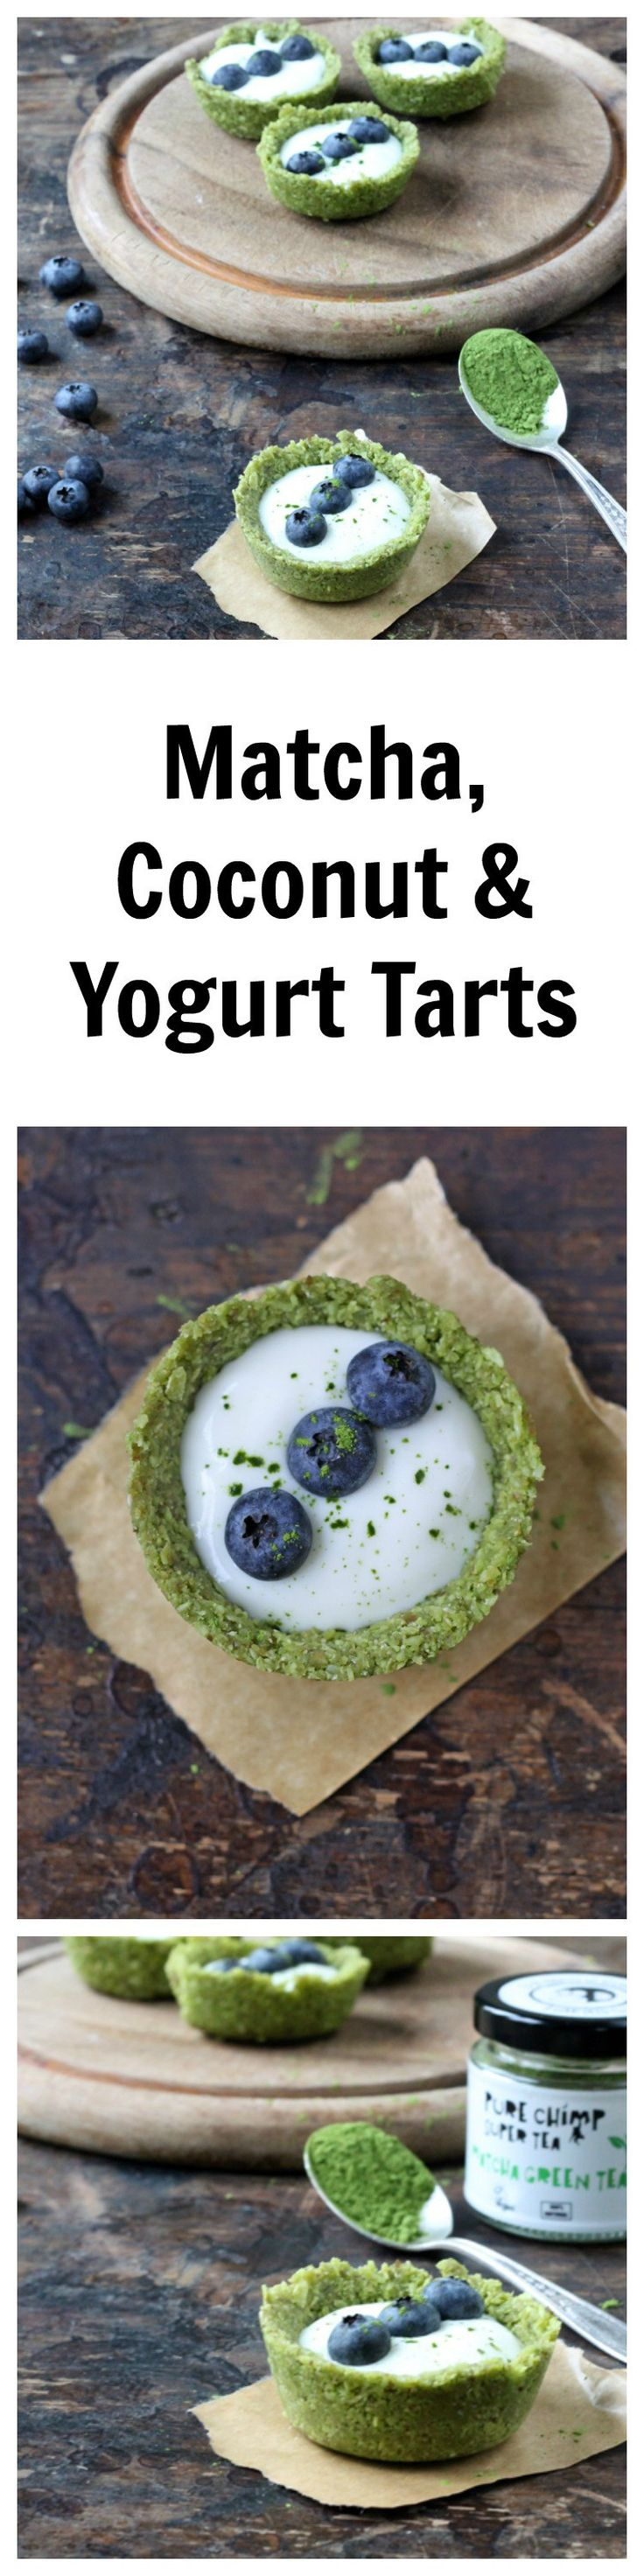 Matcha Green Tea, Coconut and Yogurt Tarts | Veggie Desserts Blog